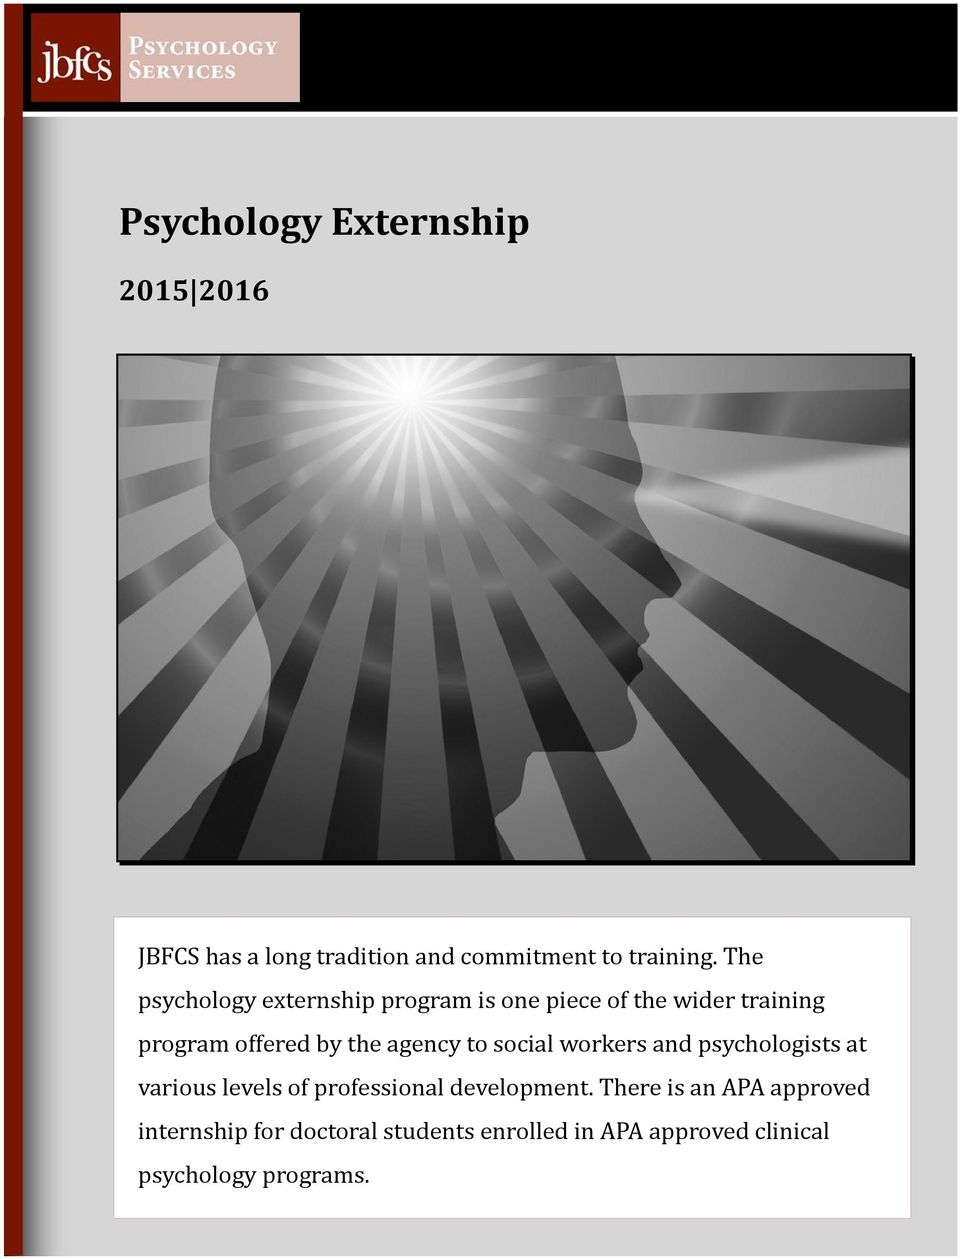 The psychology externship program is one piece of the wider training program offered by the agency